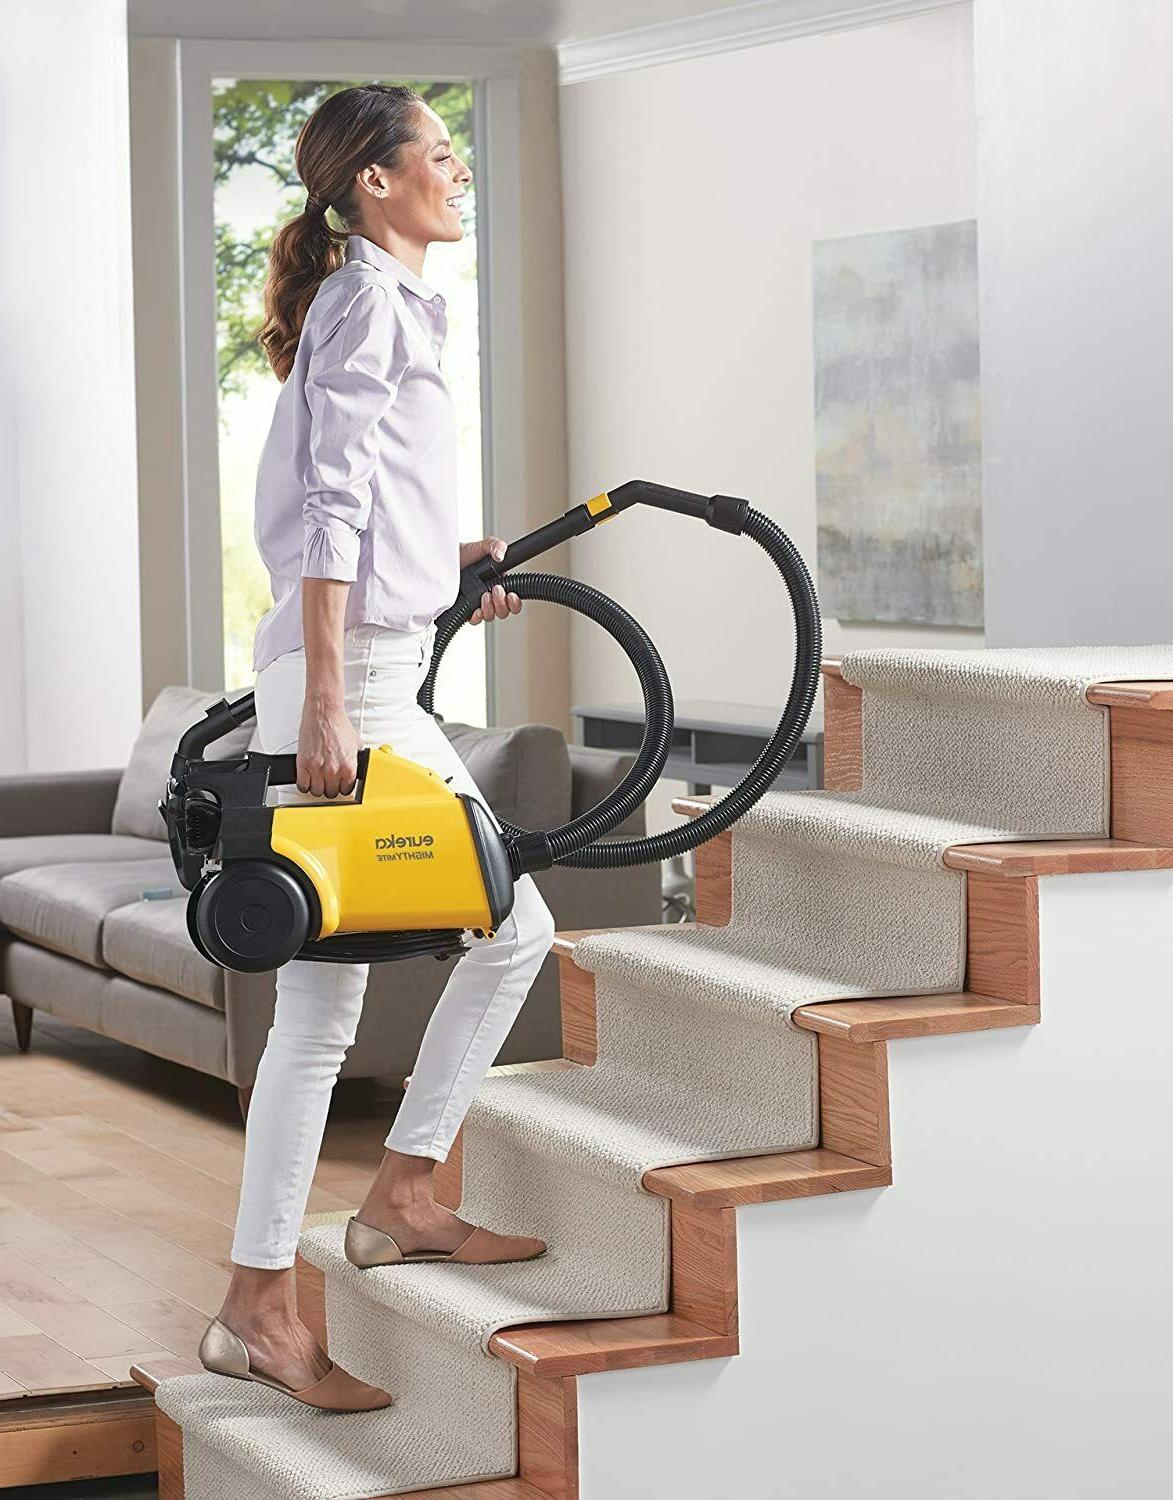 Eureka Corded Canister Vacuum Yellow, 3670